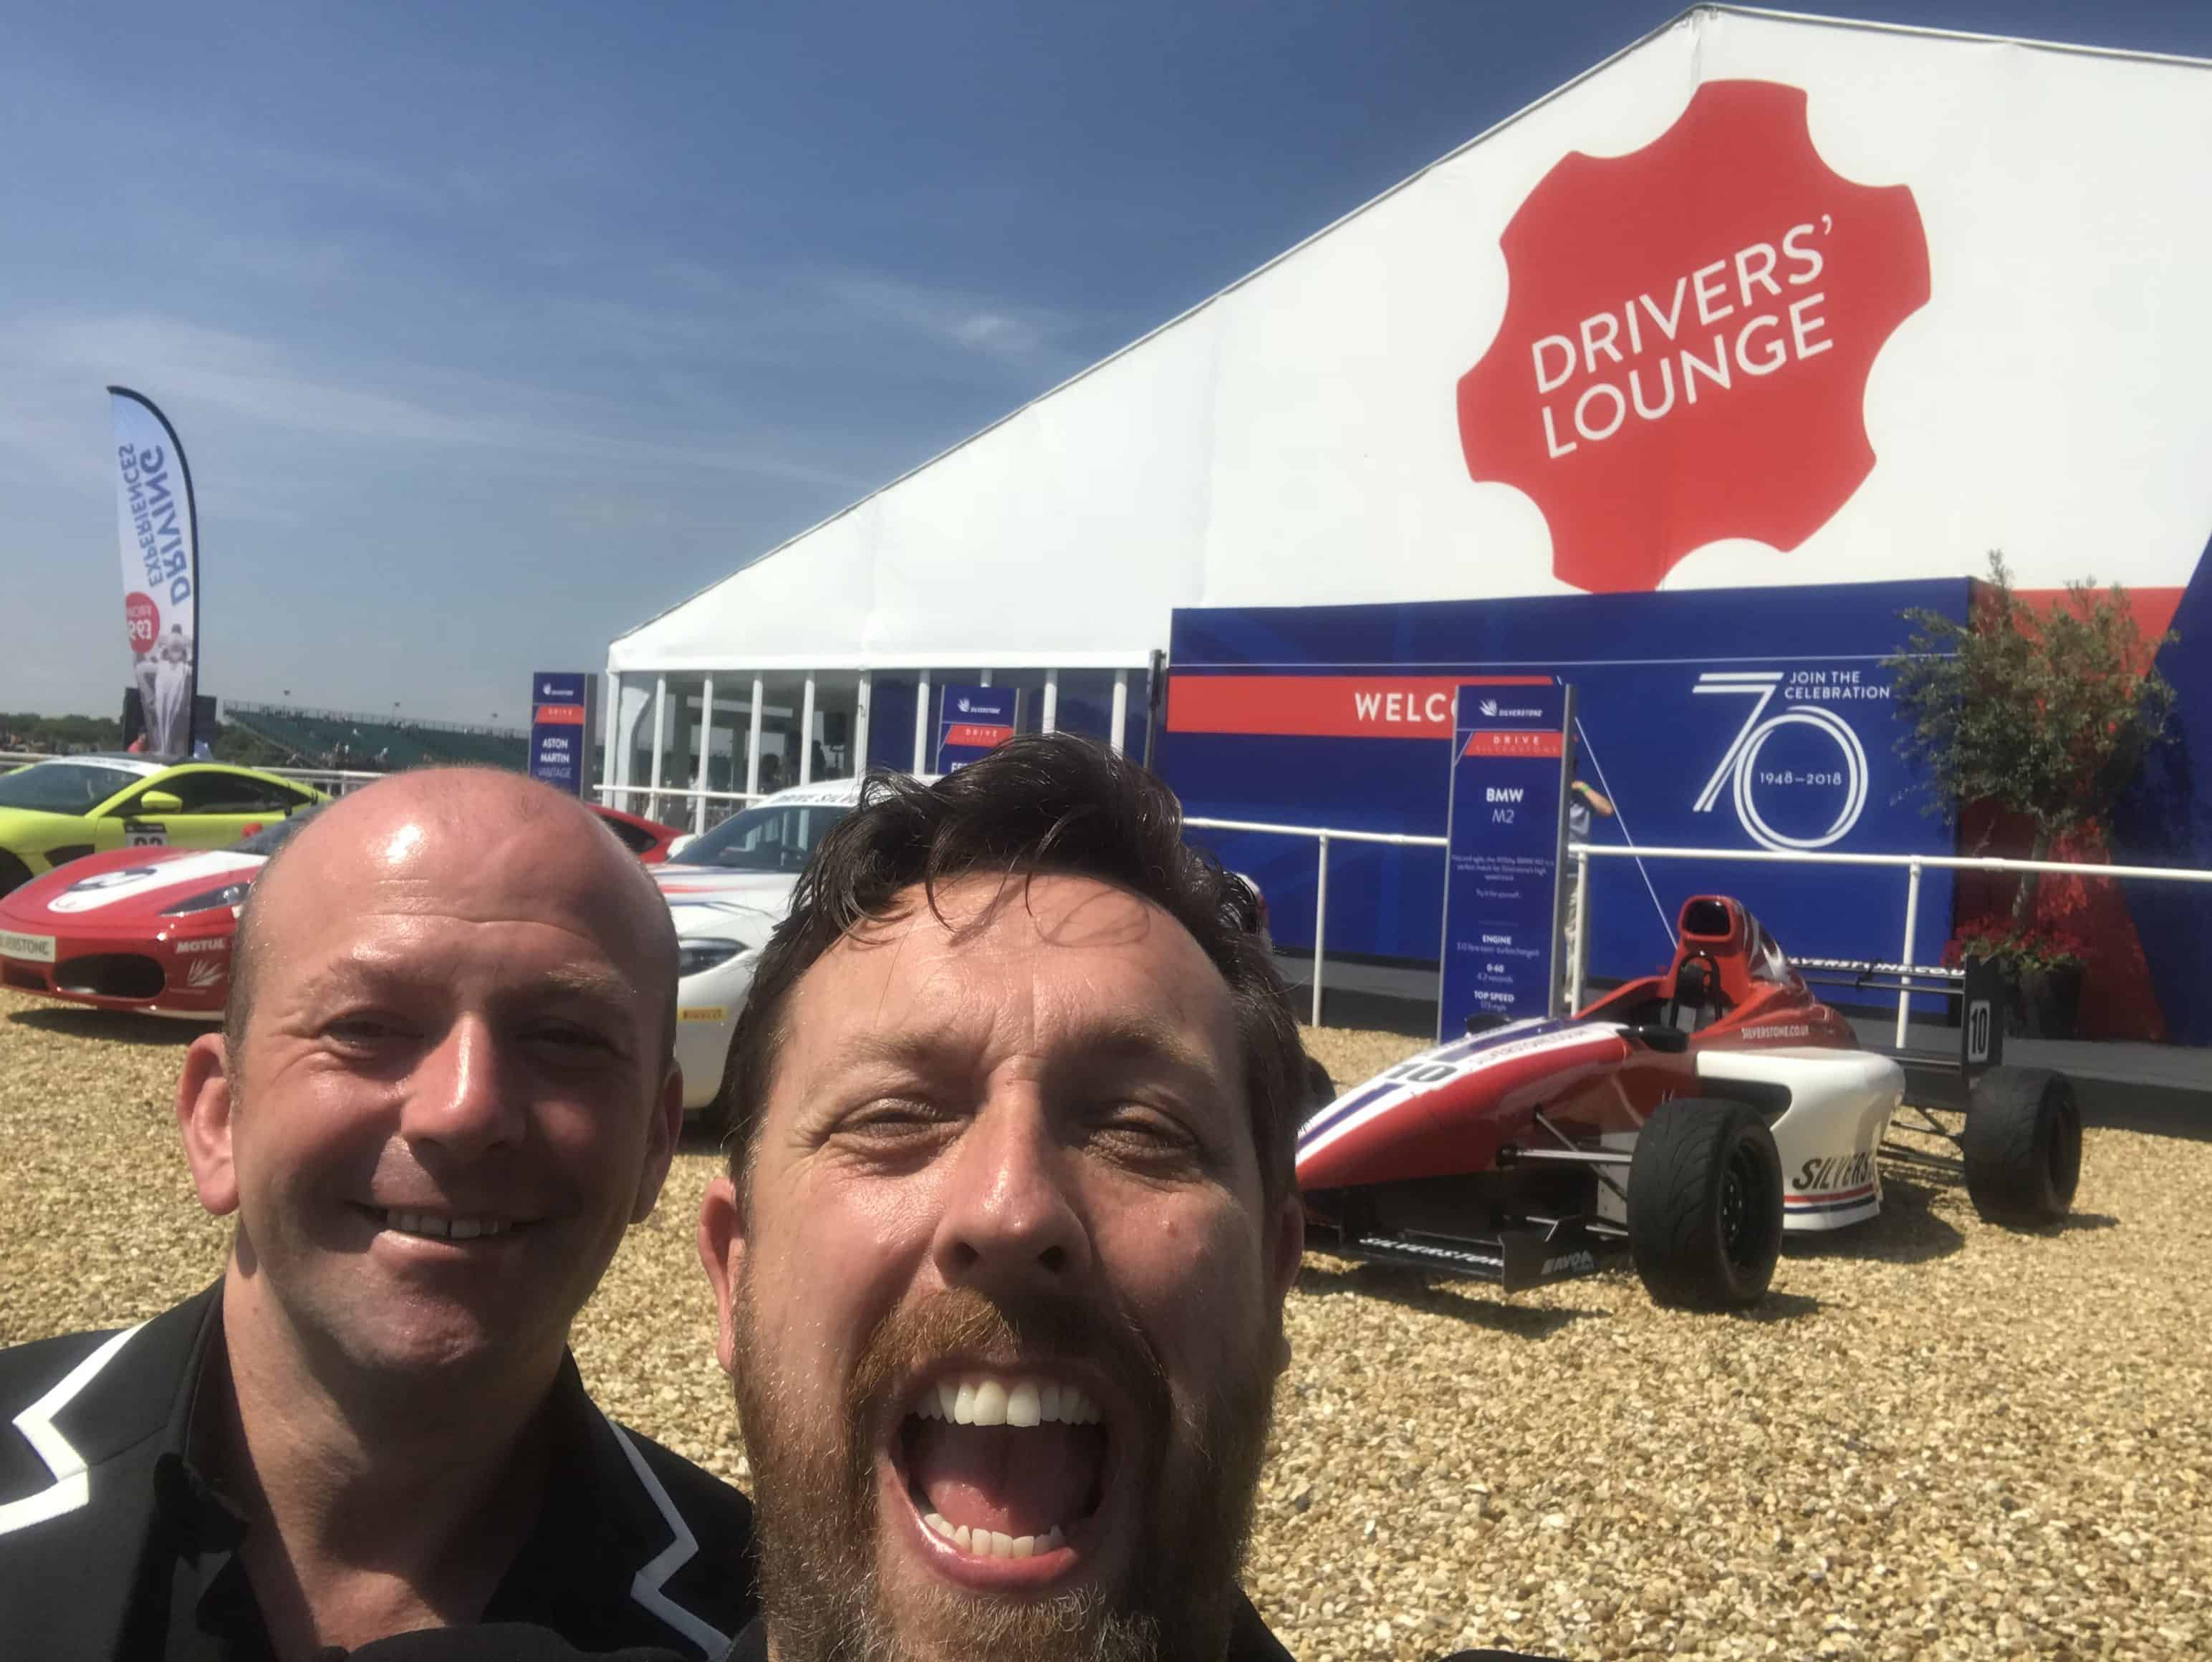 Outside the Drivers Lounge at the British Grand Prix